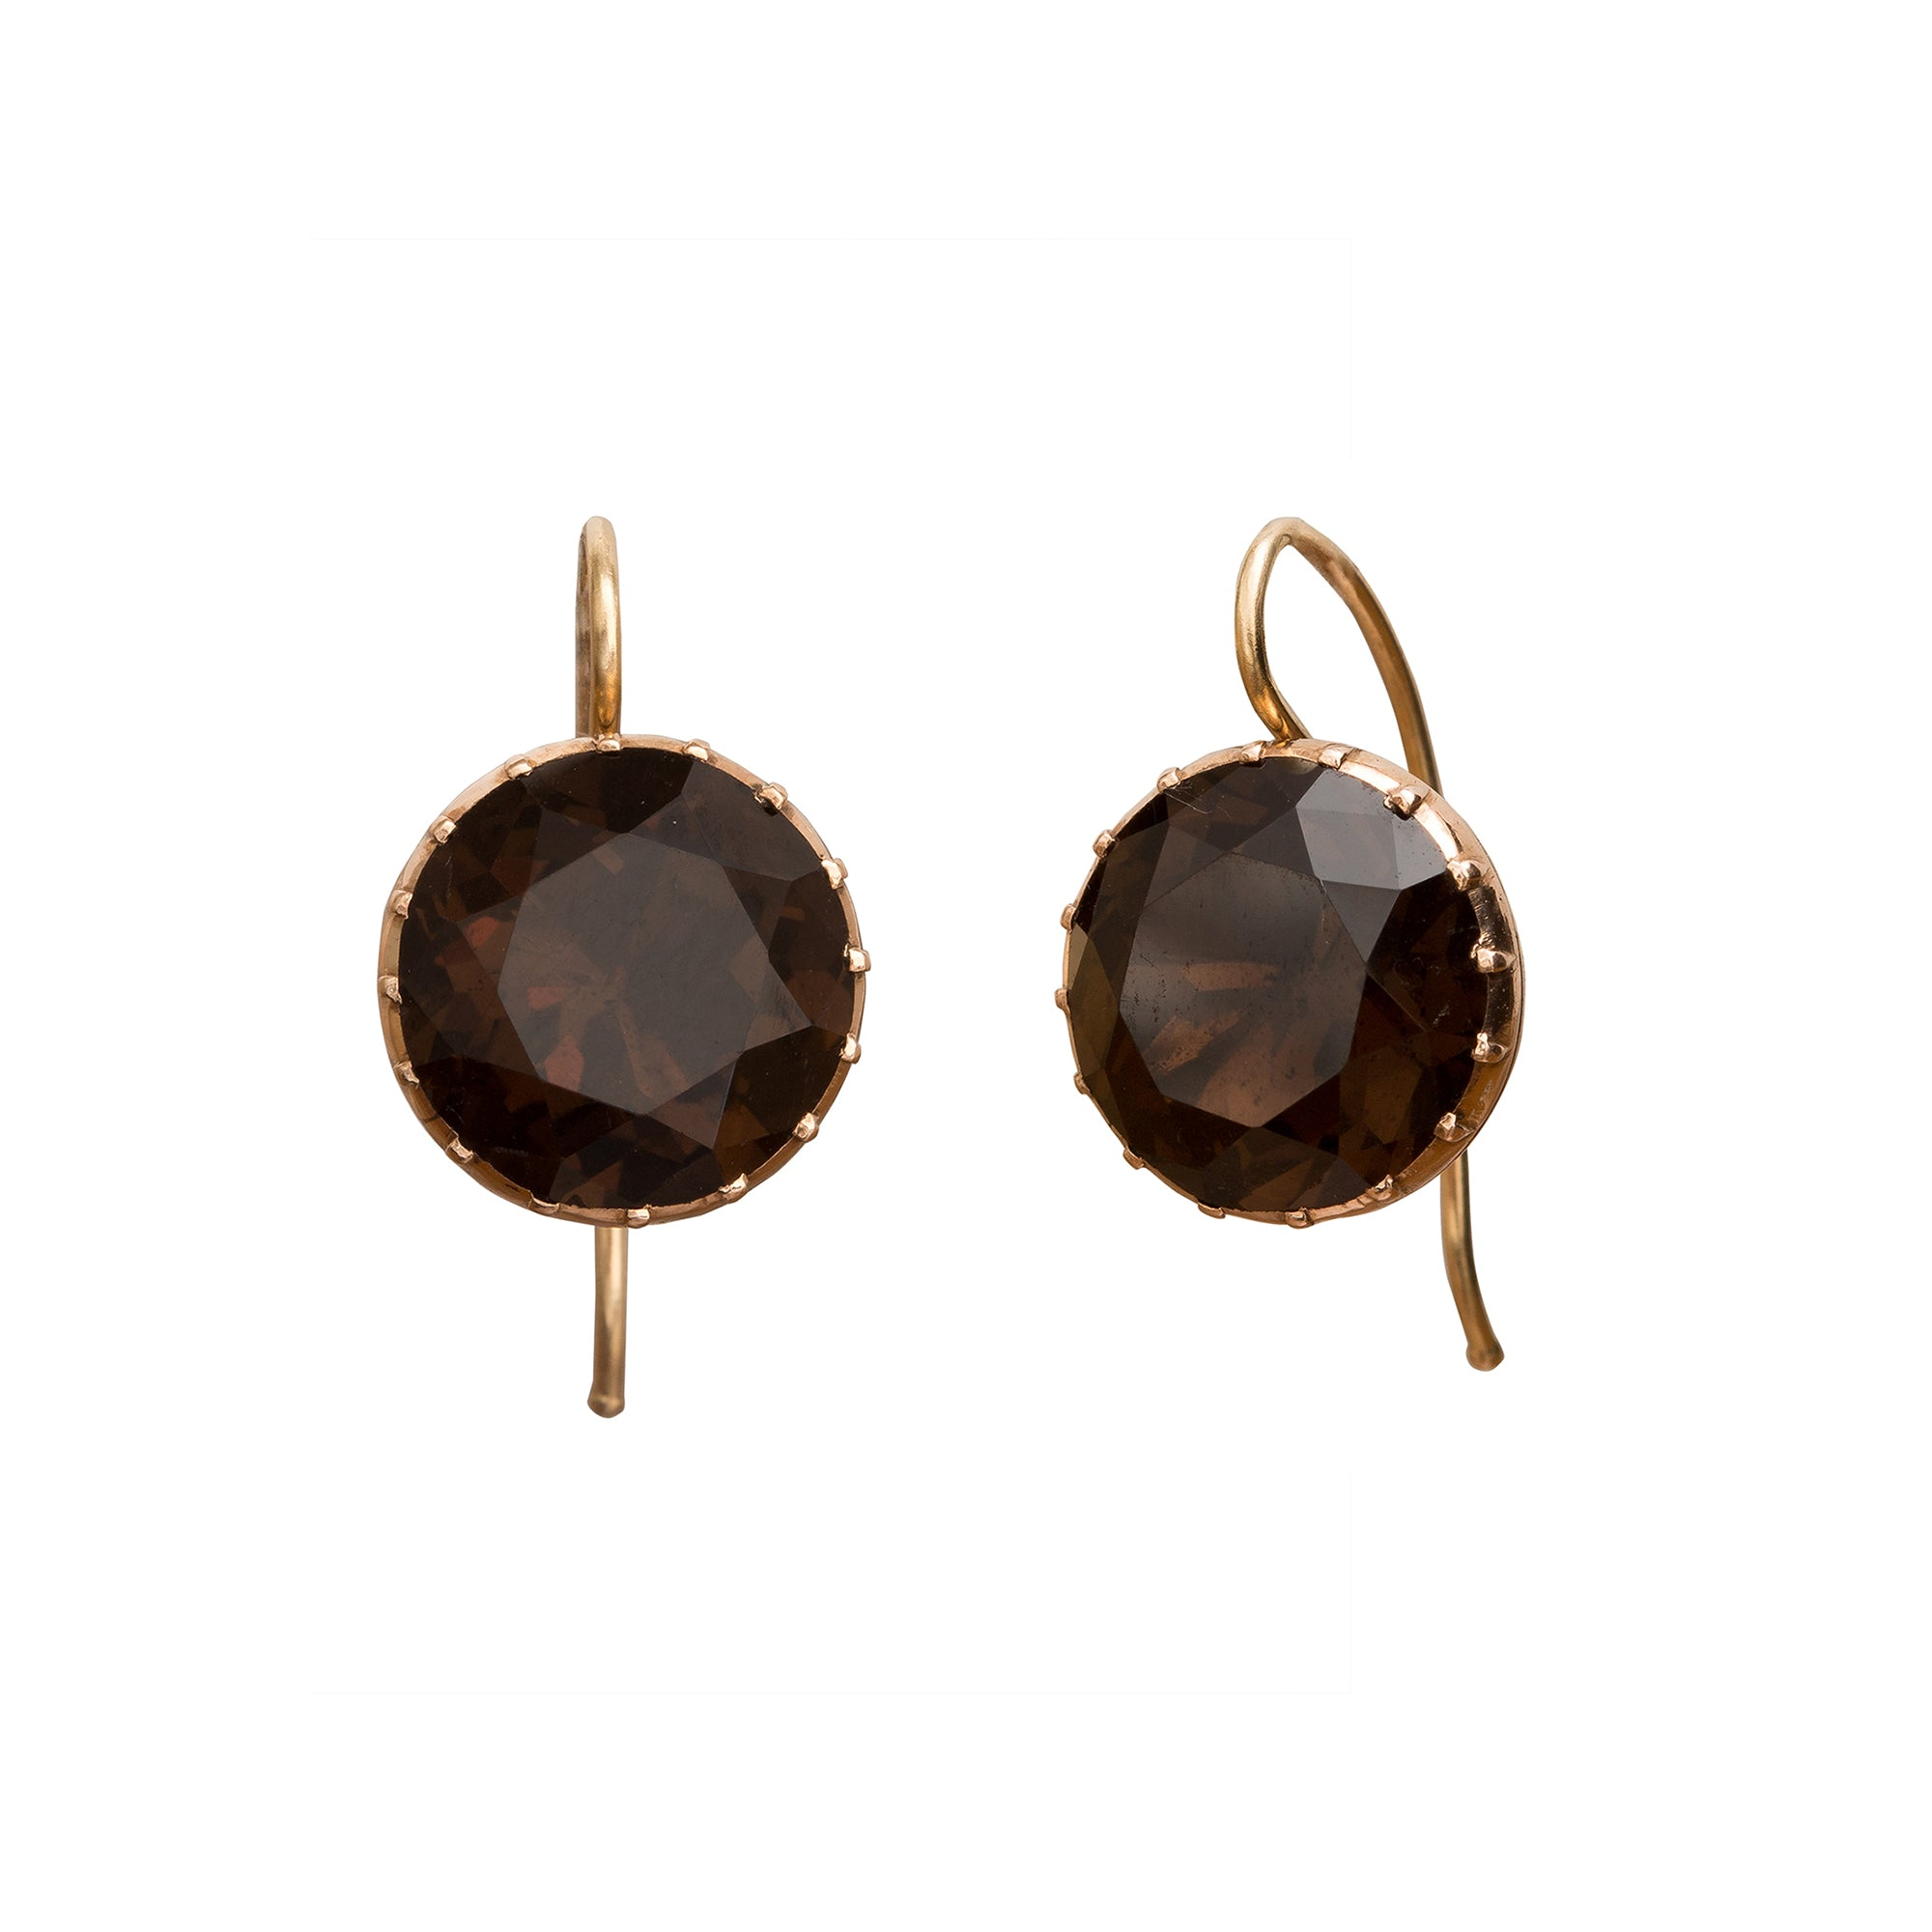 Smoky Quartz Earrings by Vintage Jewelry for Broken English Jewelry